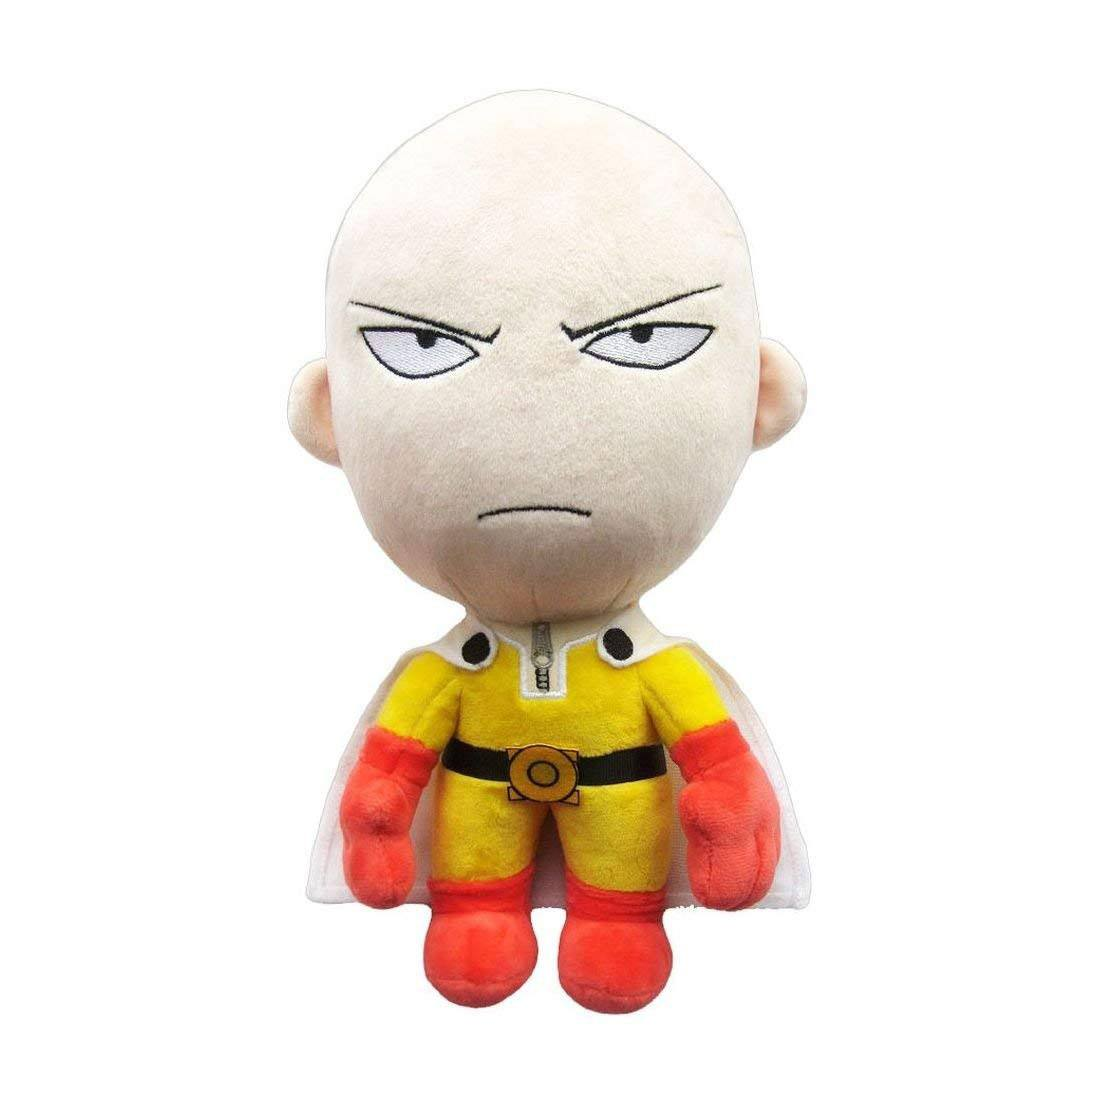 Official One-Punch Man Saitama Angry Plushie - 28 cm